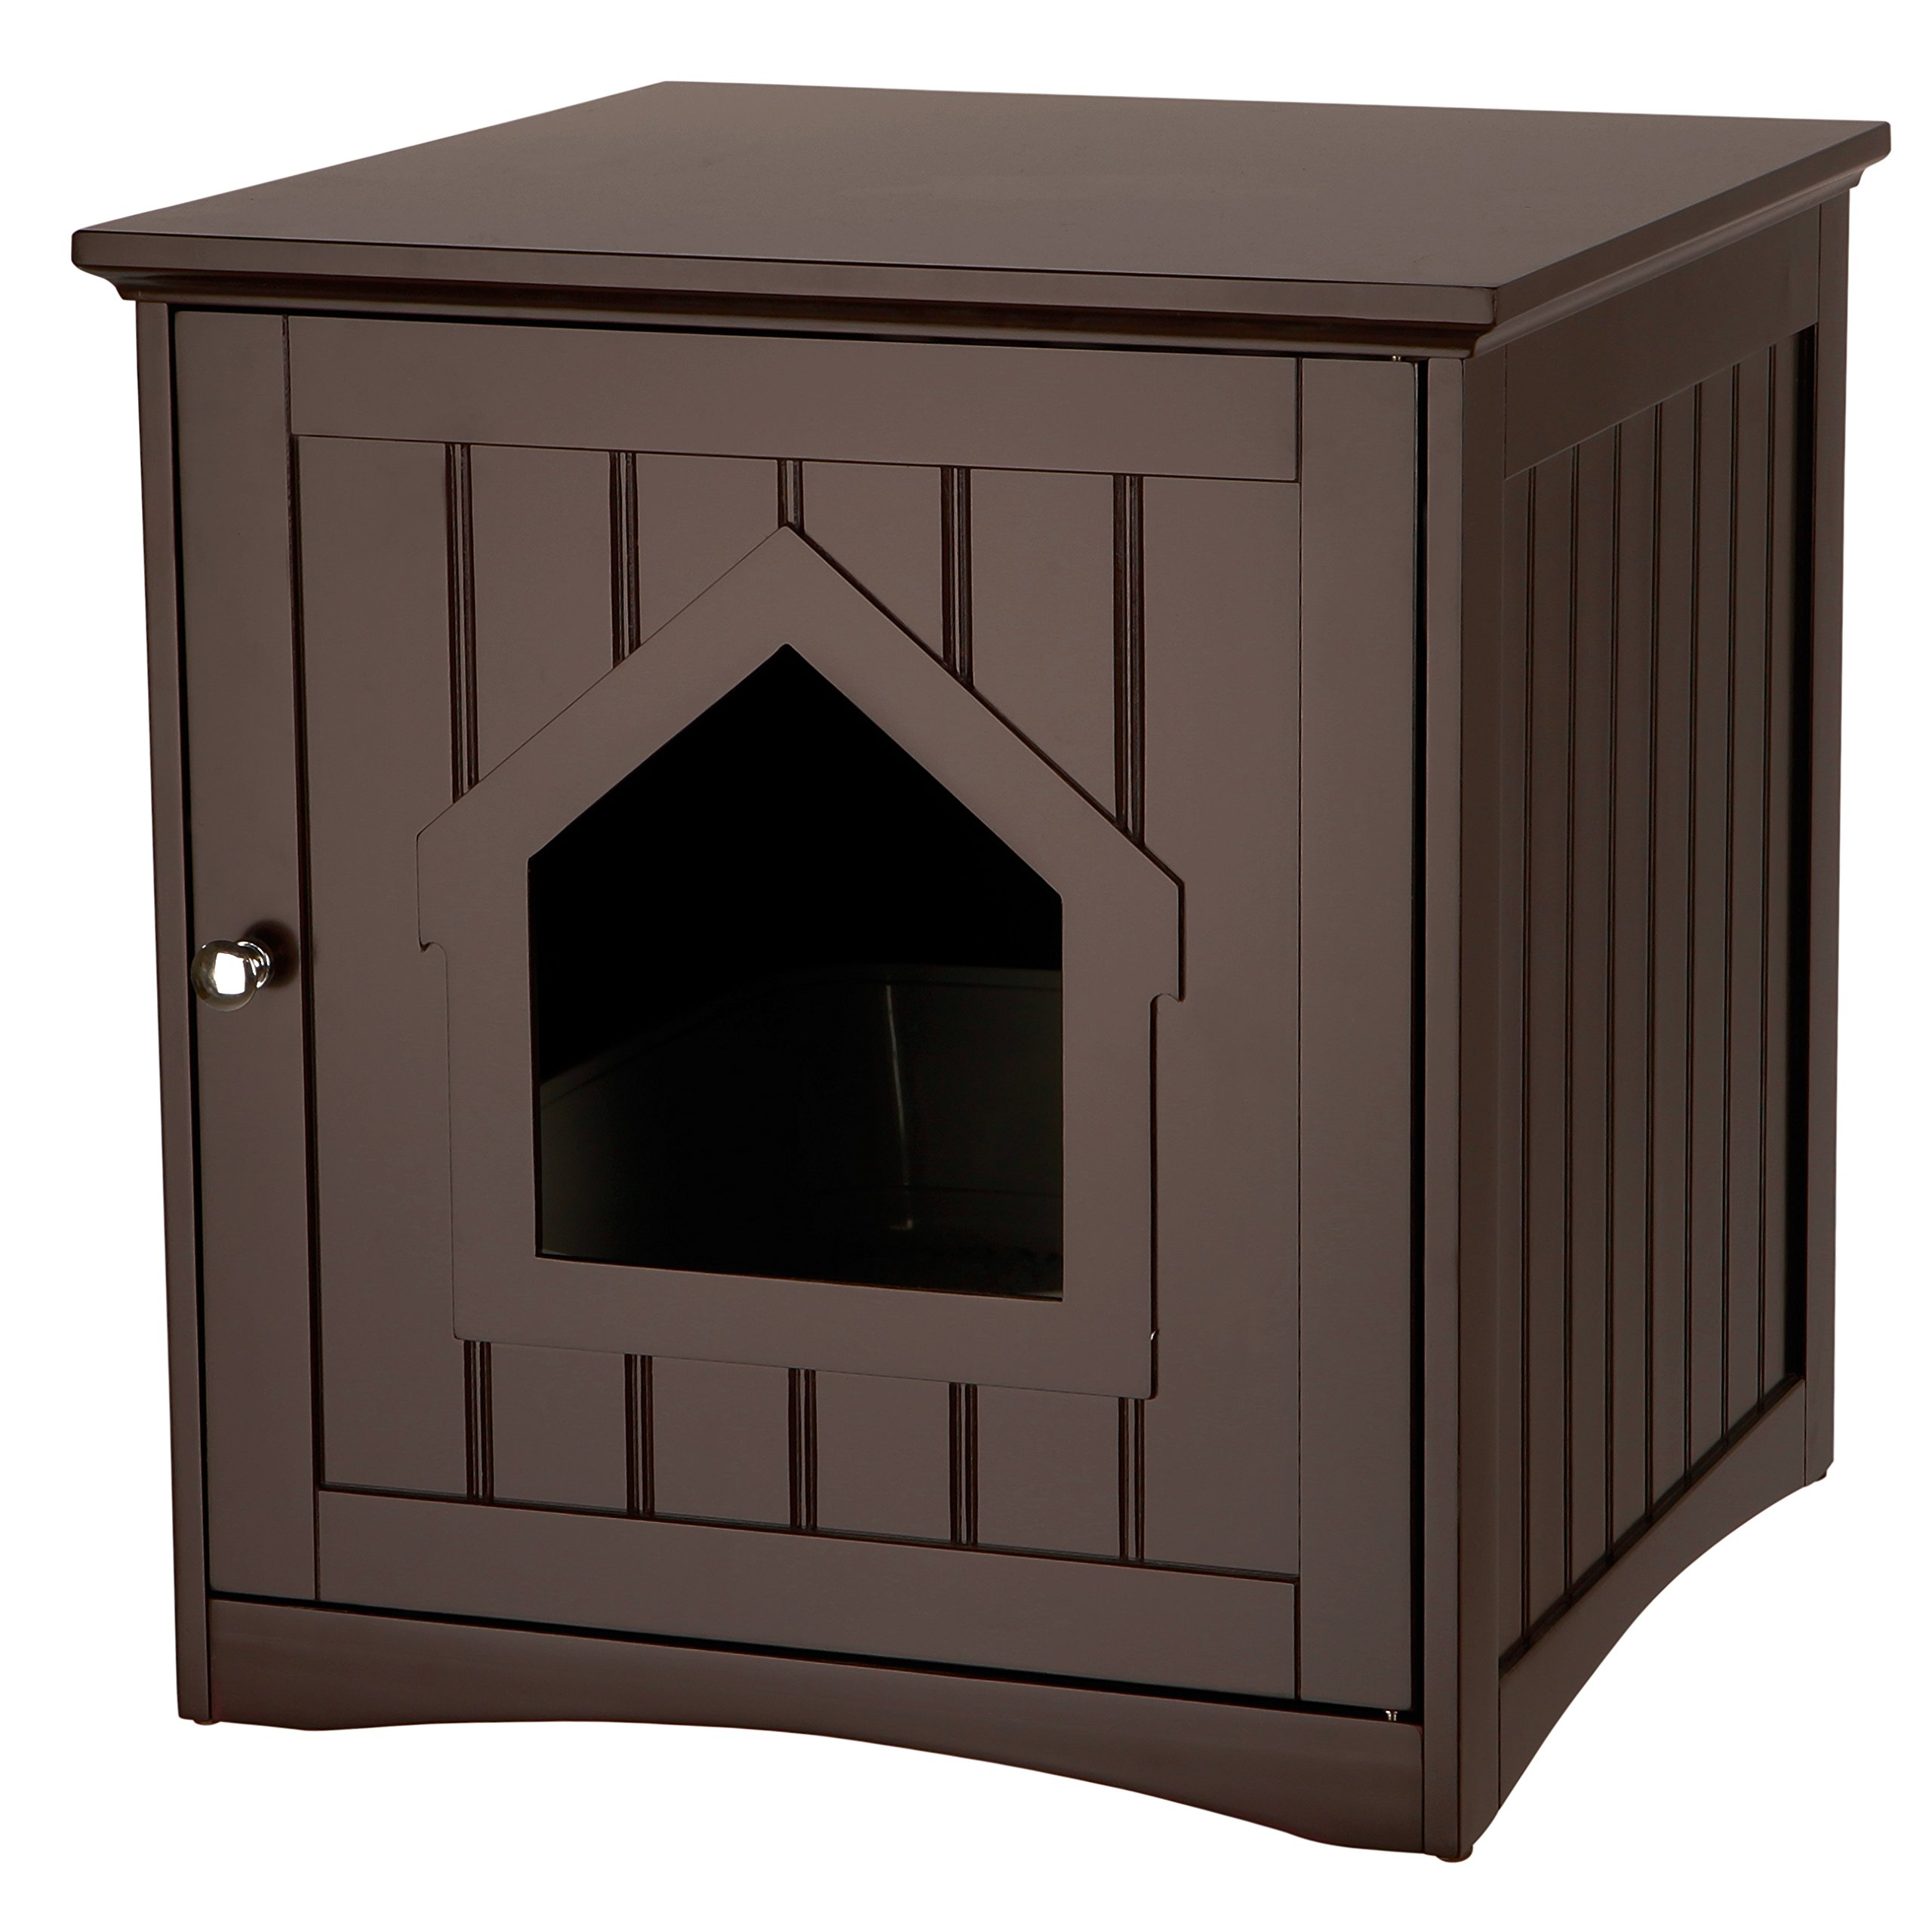 Trixie Pet Products Wooden Cat Home & Litter Box, Brown